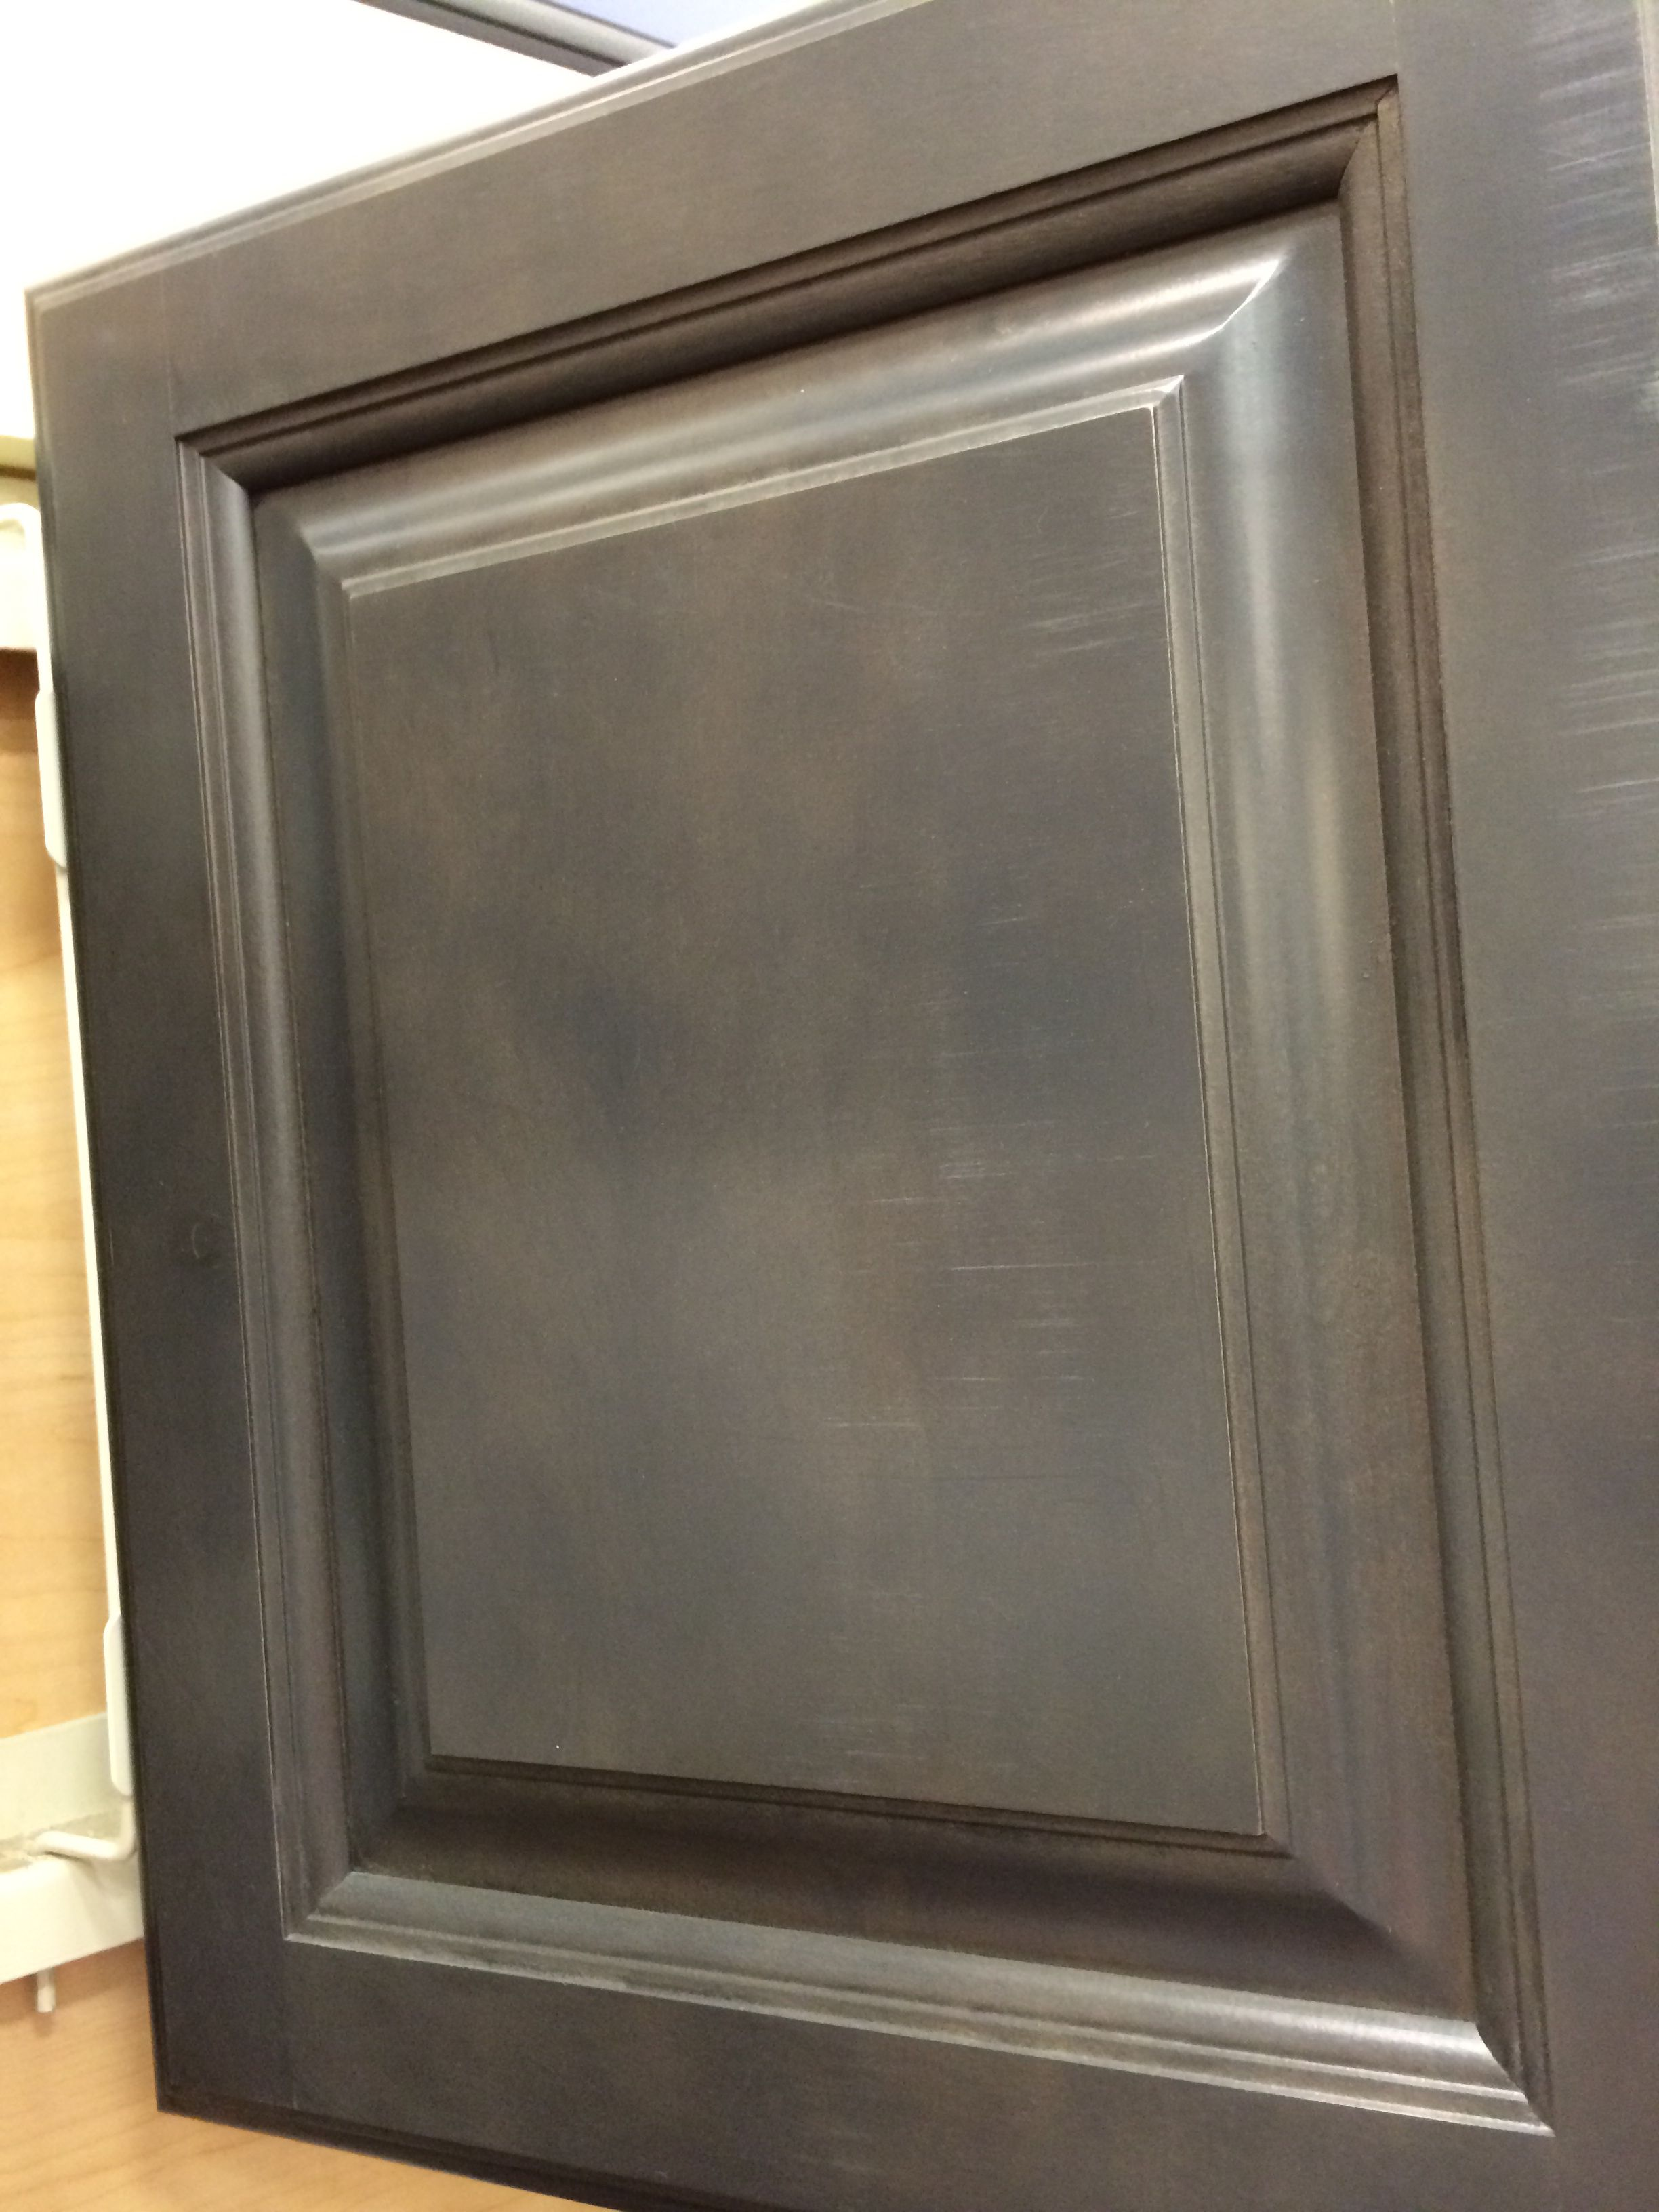 Diamond Reflections Cabinetry @ Lowes. Storm | HomeStyle Kitchen ...